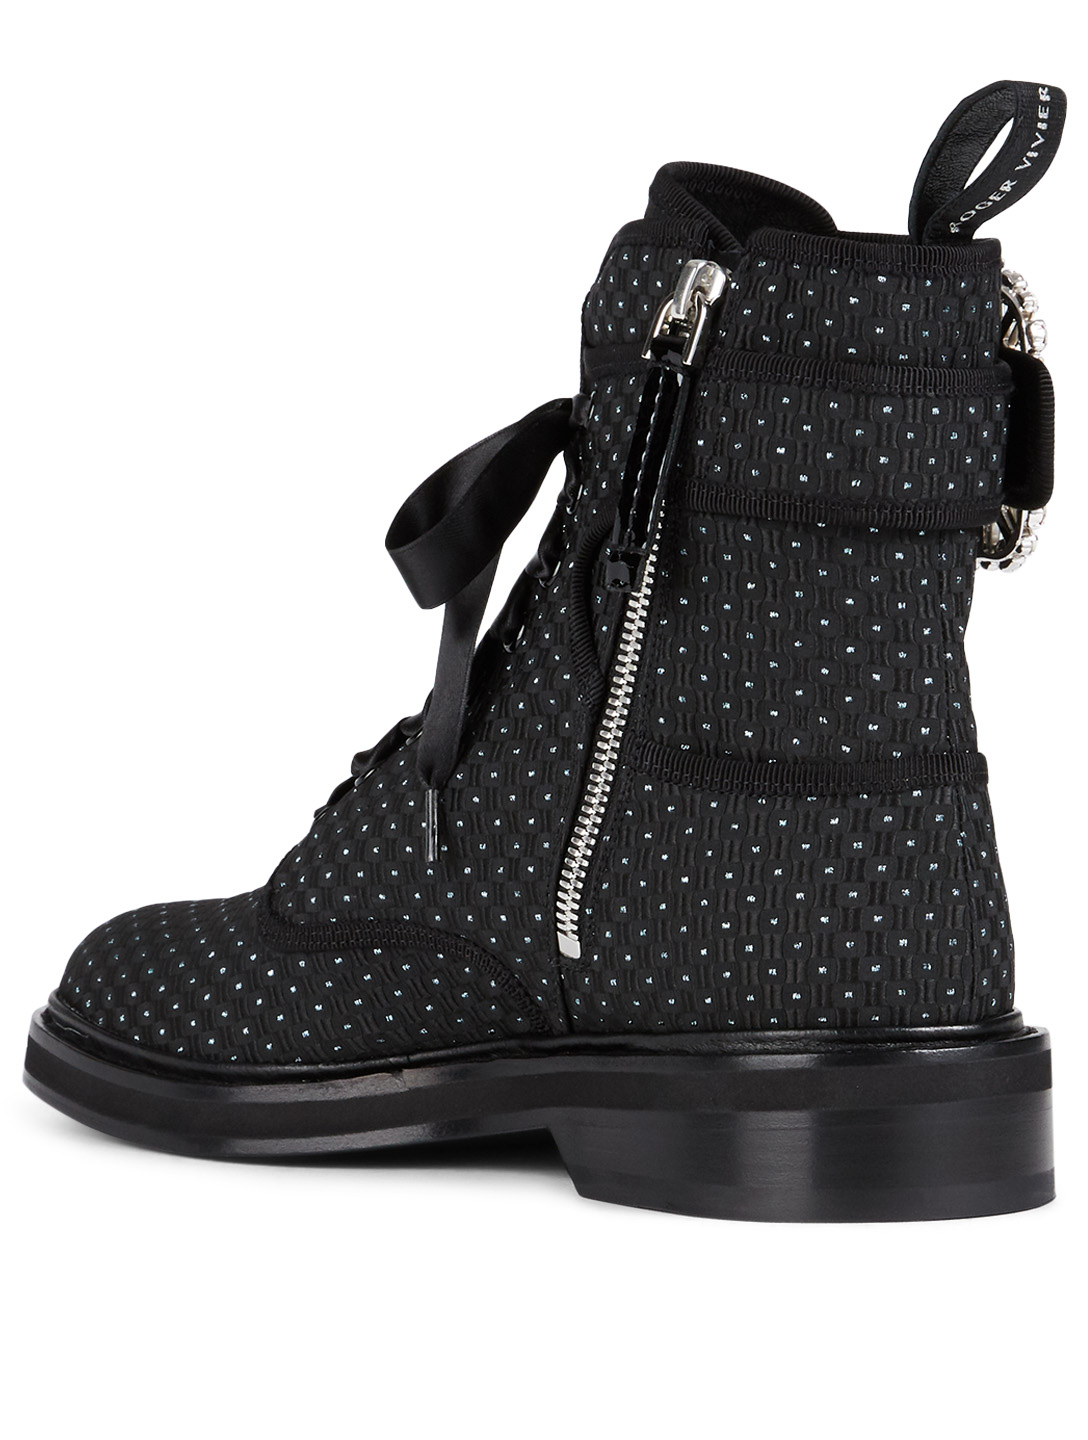 141f116490e ROGER VIVIER Viv' Rangers Fabric Ankle Boots With Strass Buckle ...